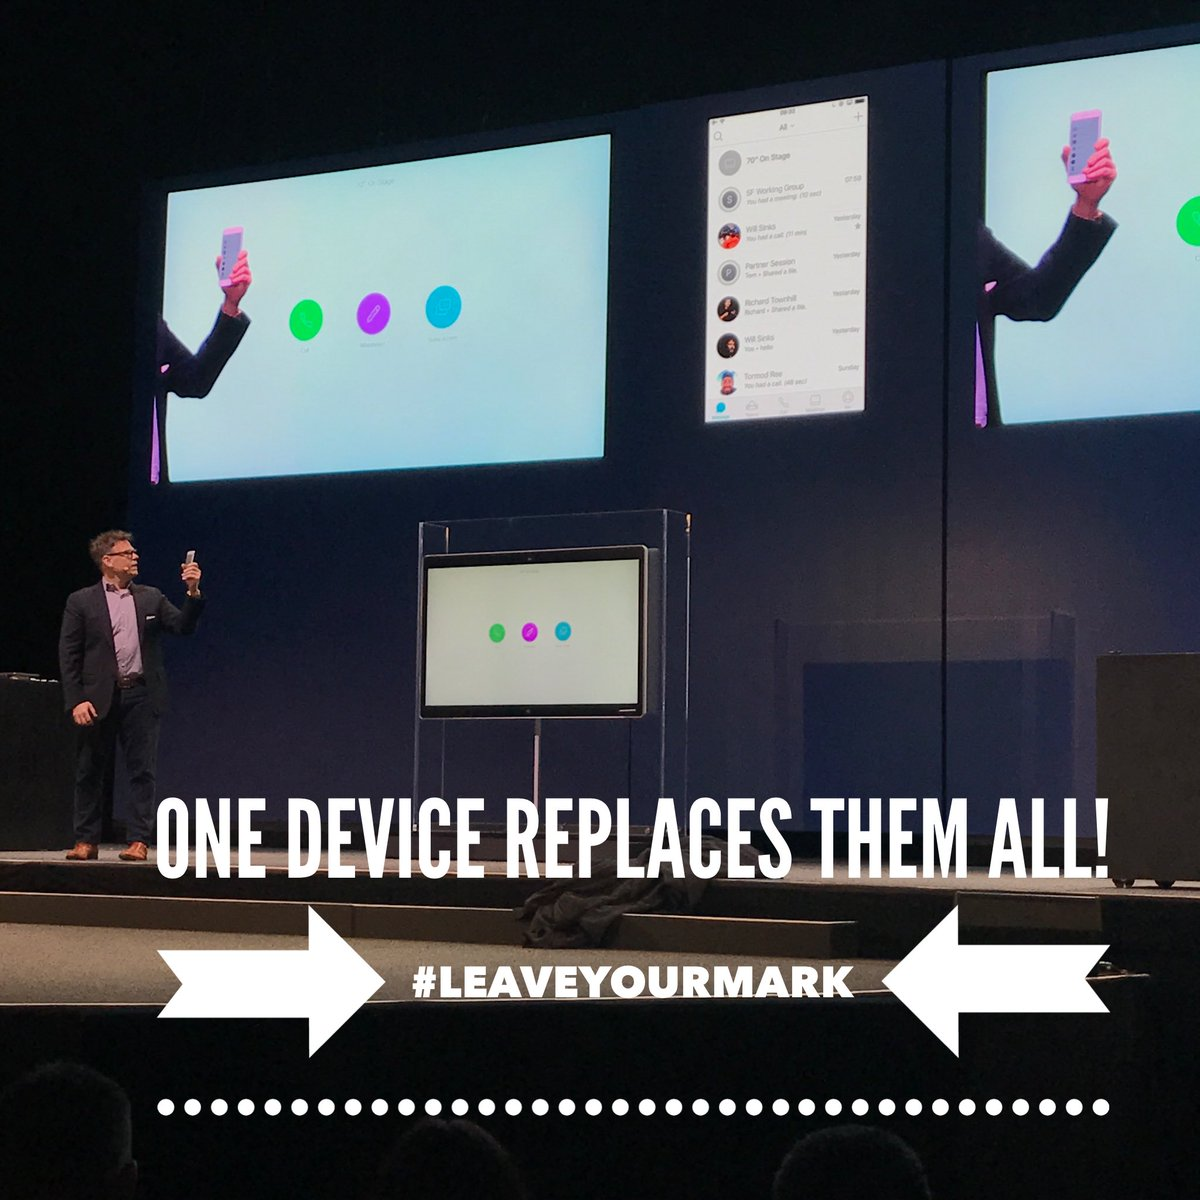 Today's entire @CiscoSpark launch event summed up in a photo. #Collaboration #Leaveyourmark #DigitalTransformation https://t.co/yBVOEwd7VT